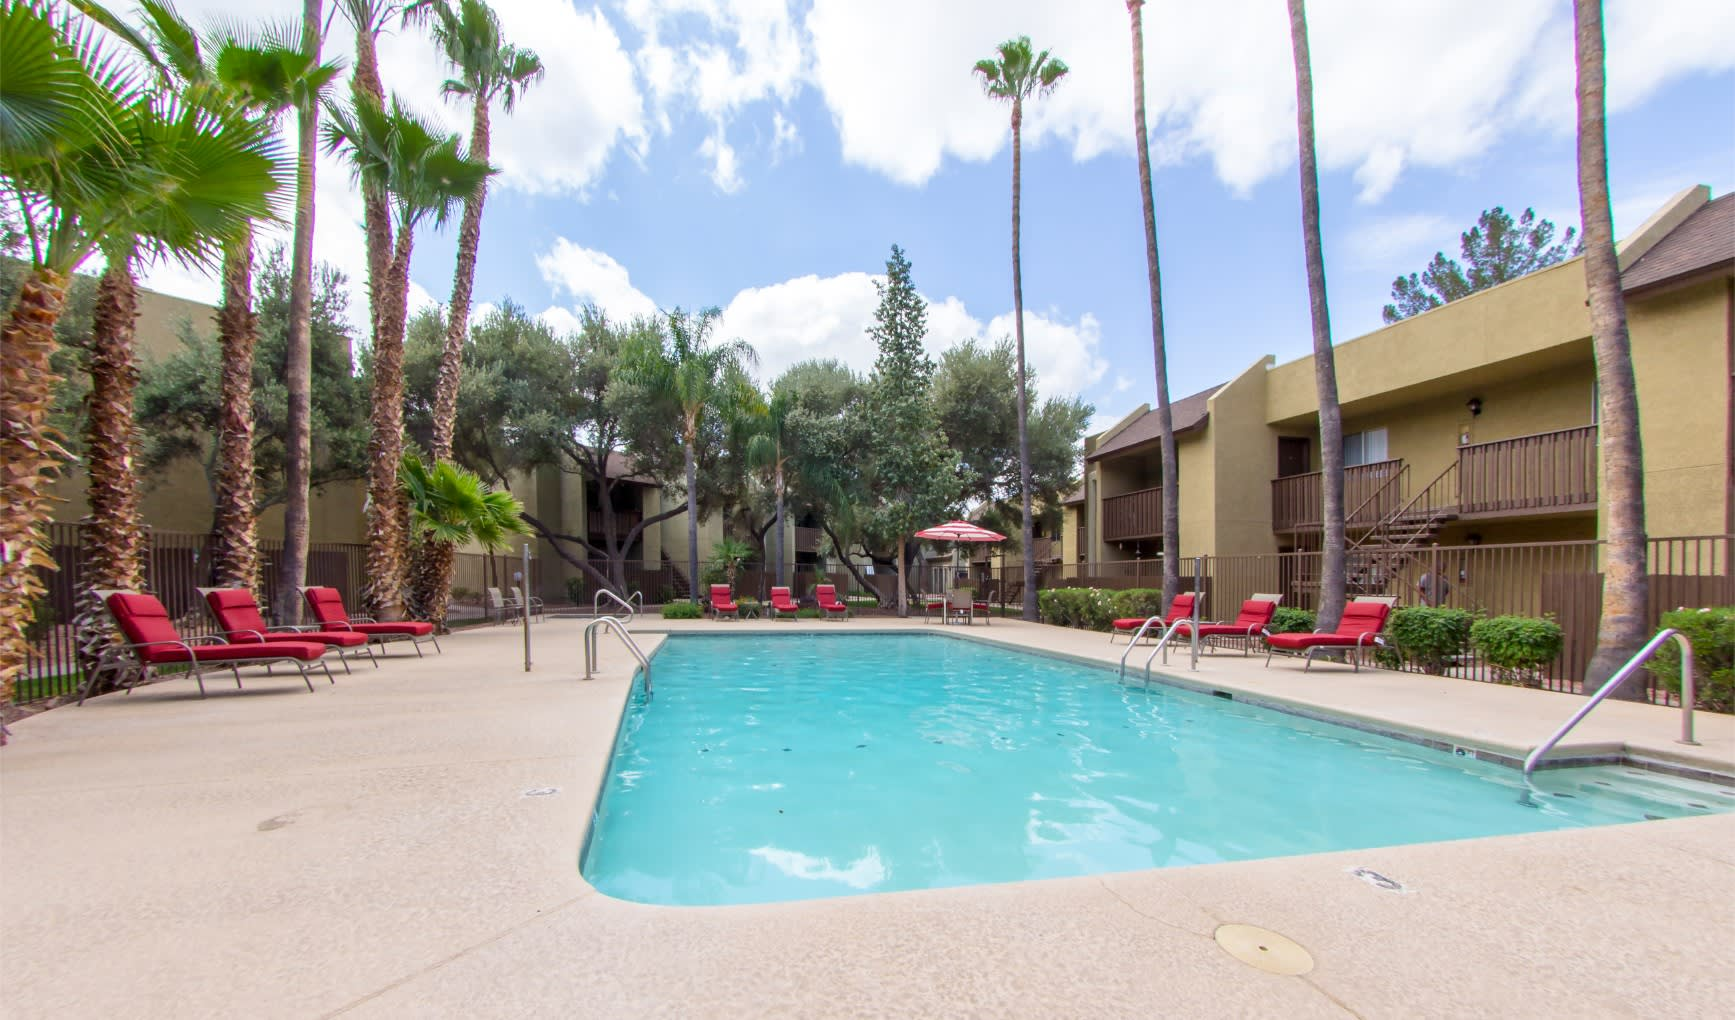 Pool & Pool Patio at River Oaks Apartments in Tucson, AZ